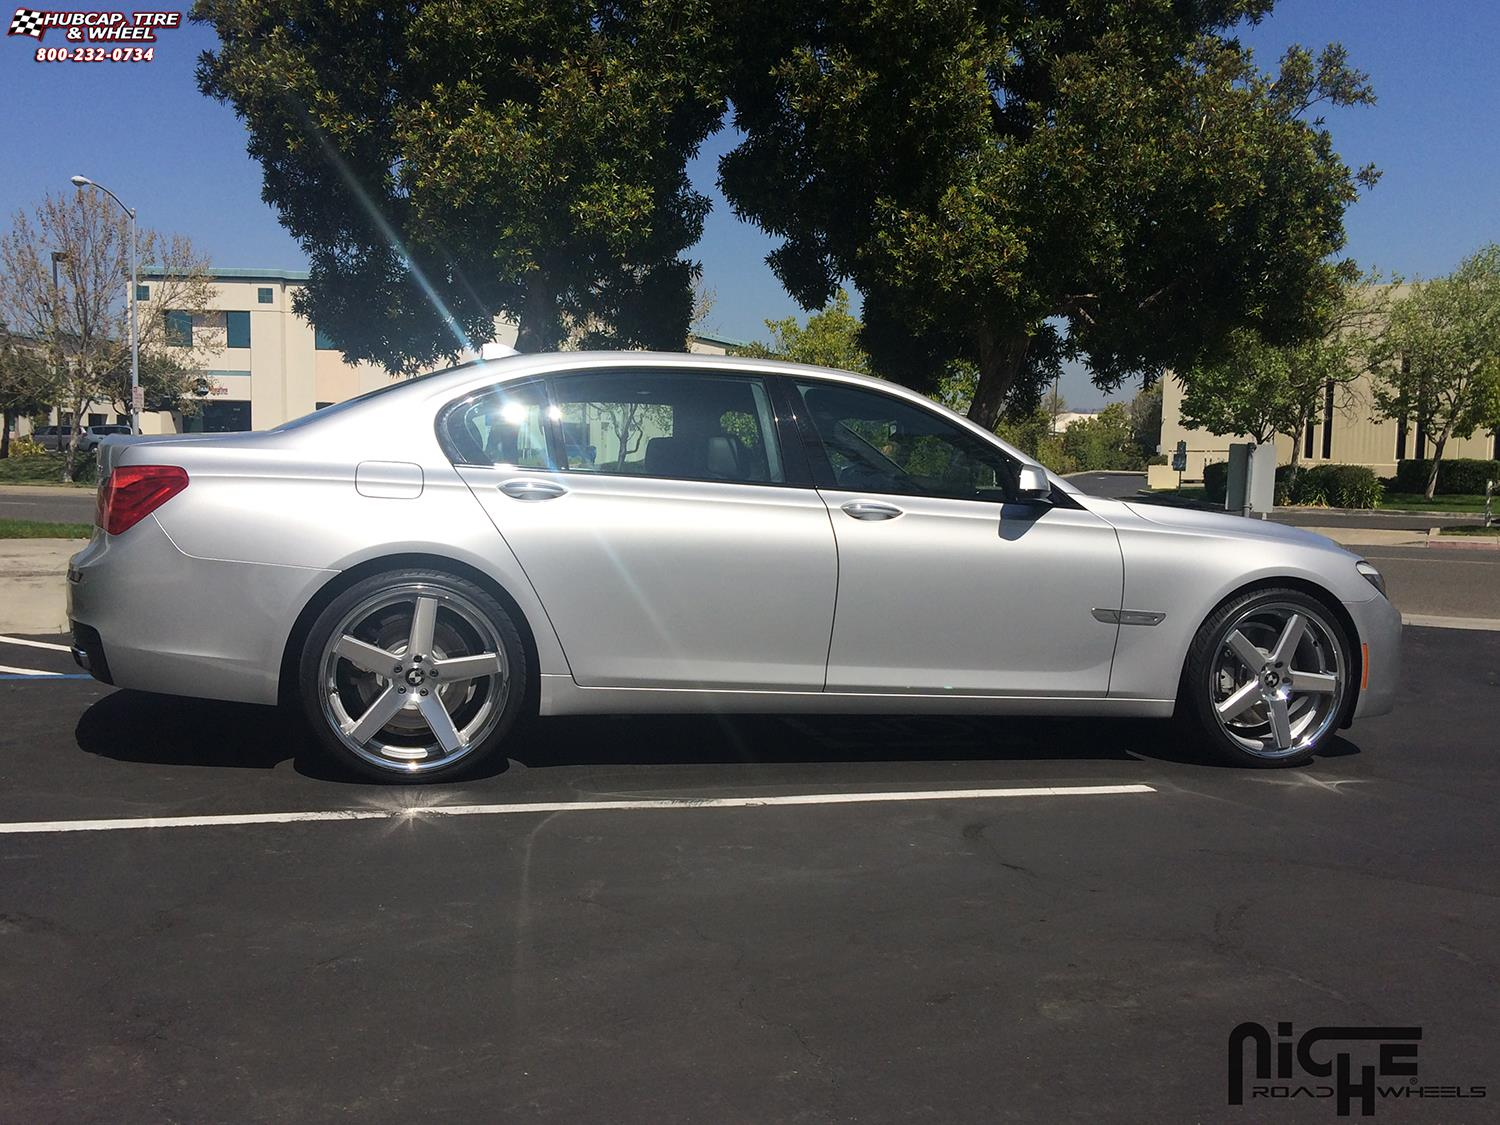 Bmw 750li Niche Nurburg M881 22x9 Silver Machined Chrome Stainless Wheels And Rims